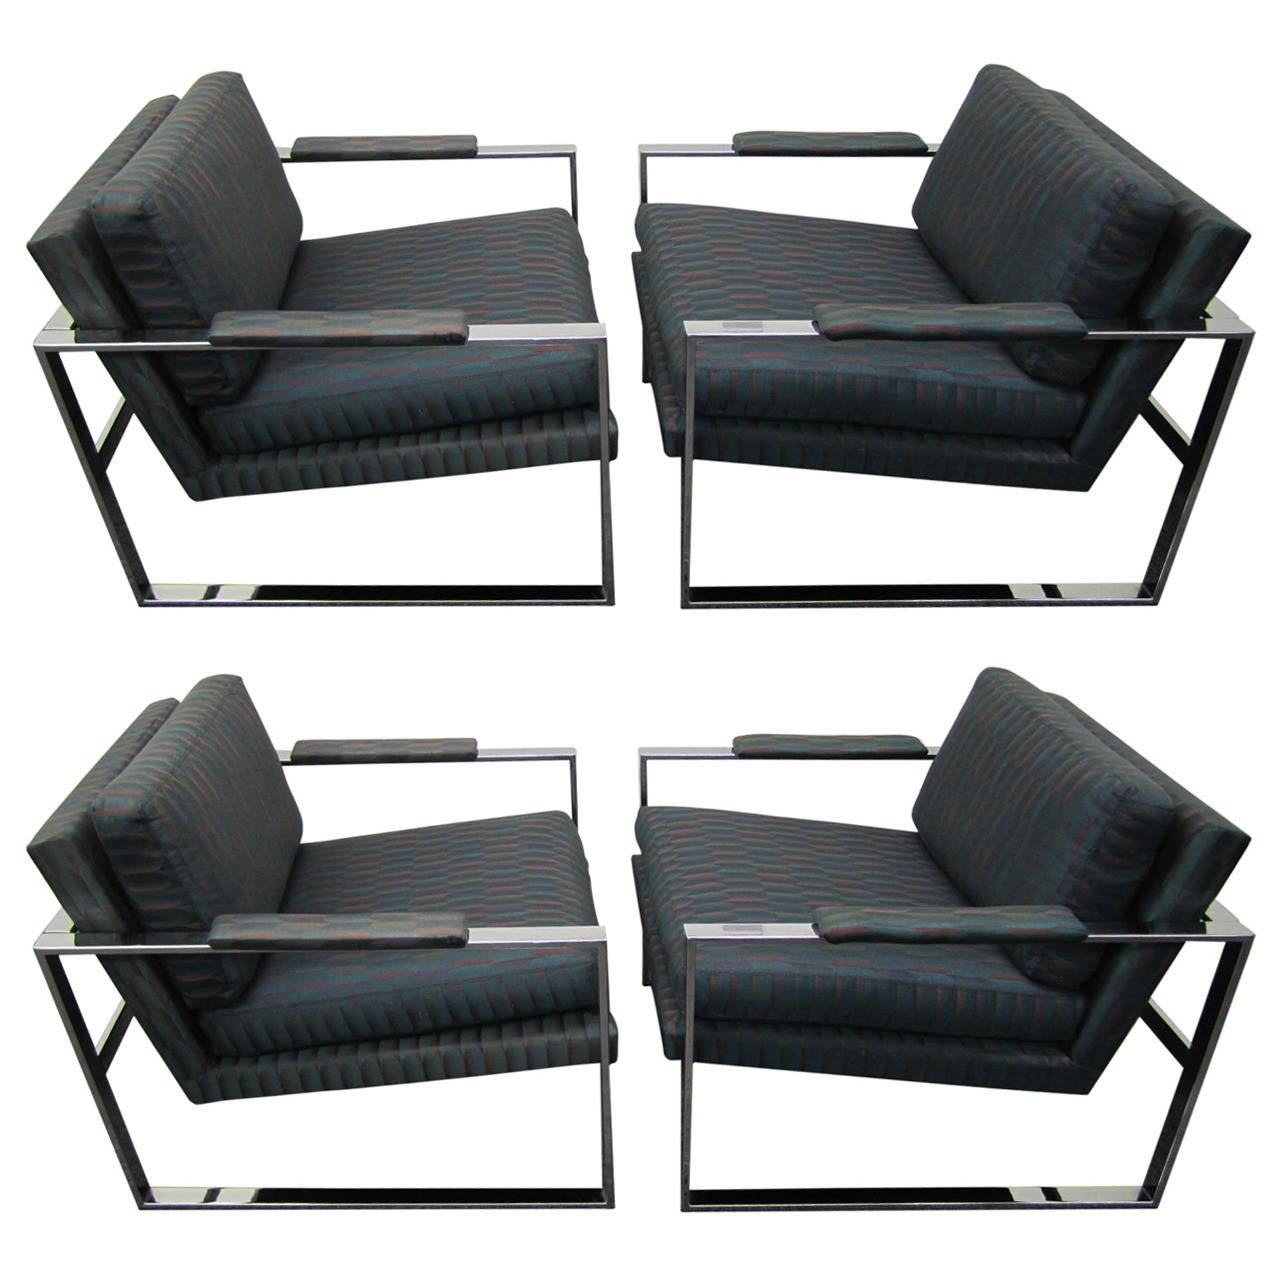 Cube Chairs Awesome Set Of Four Milo Baughman Style Chrome Cube Chairs Mid Century Modern